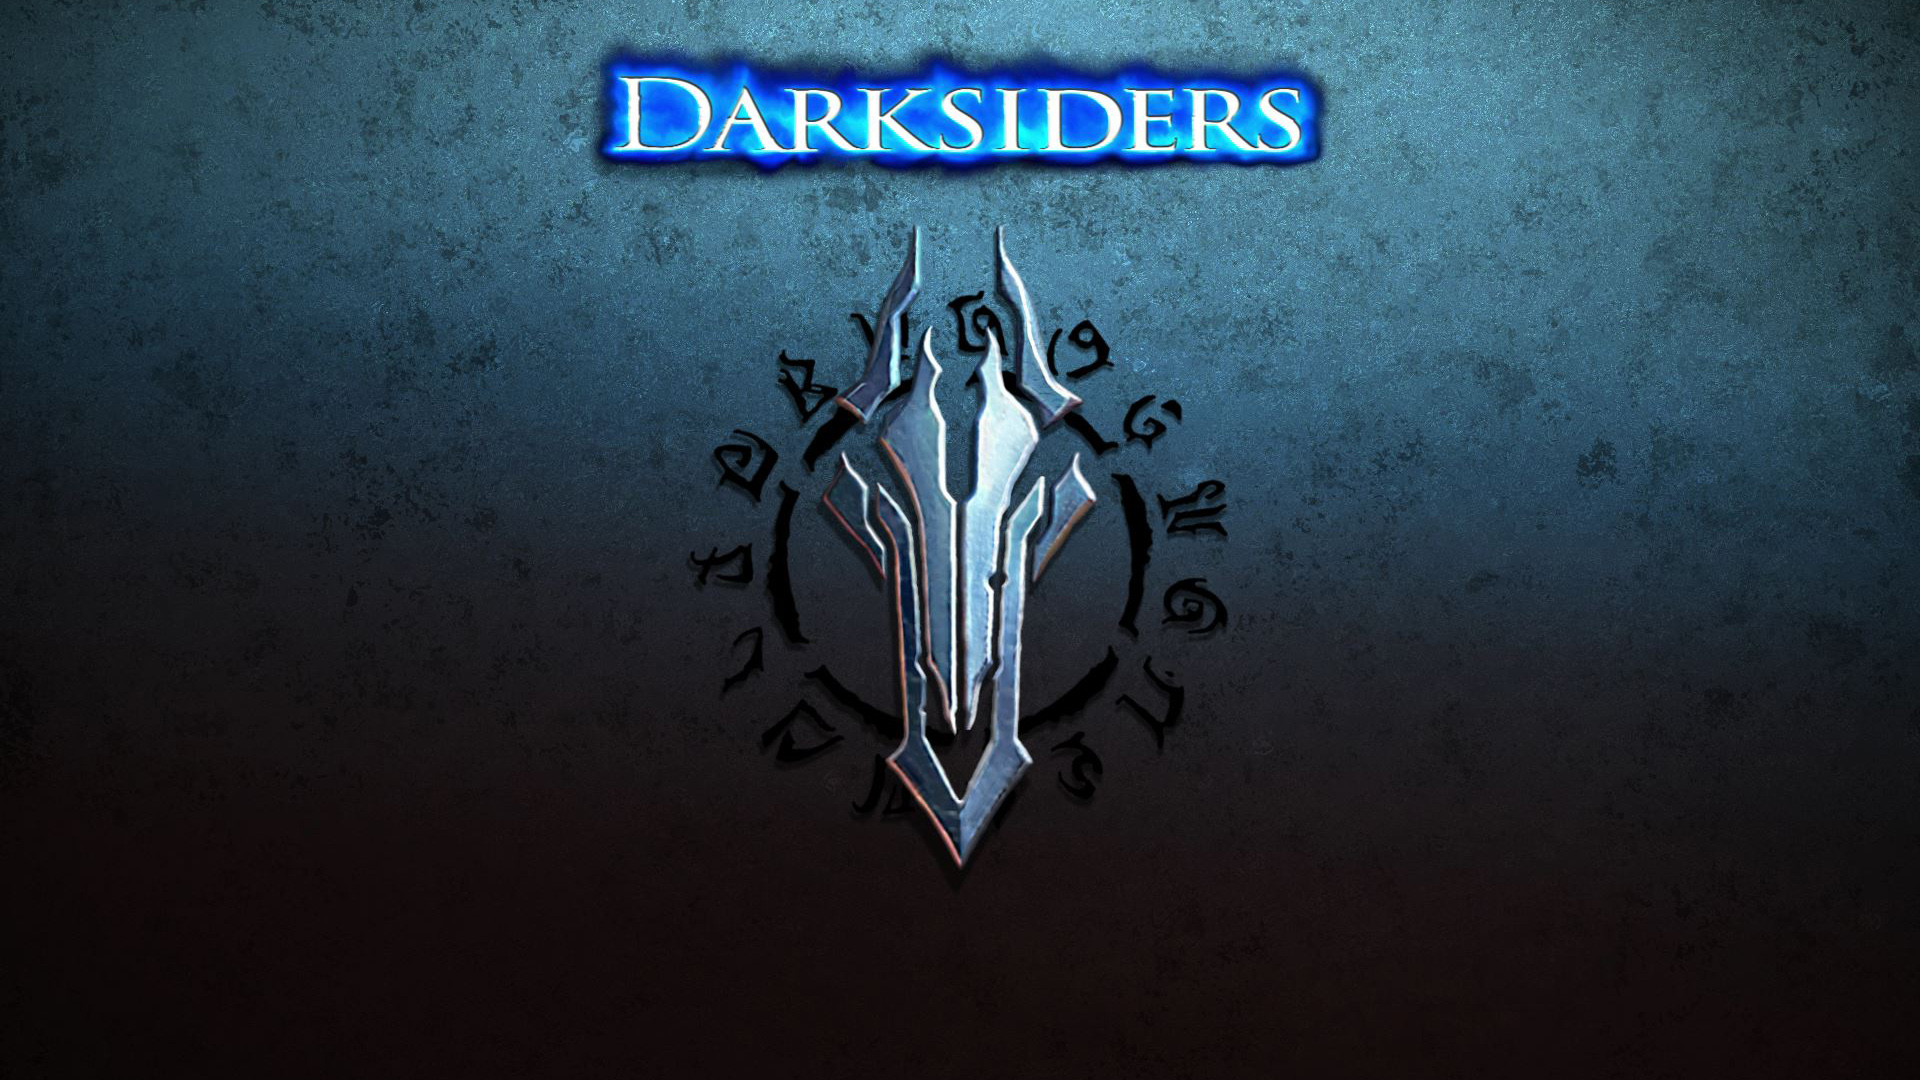 Darksiders HD